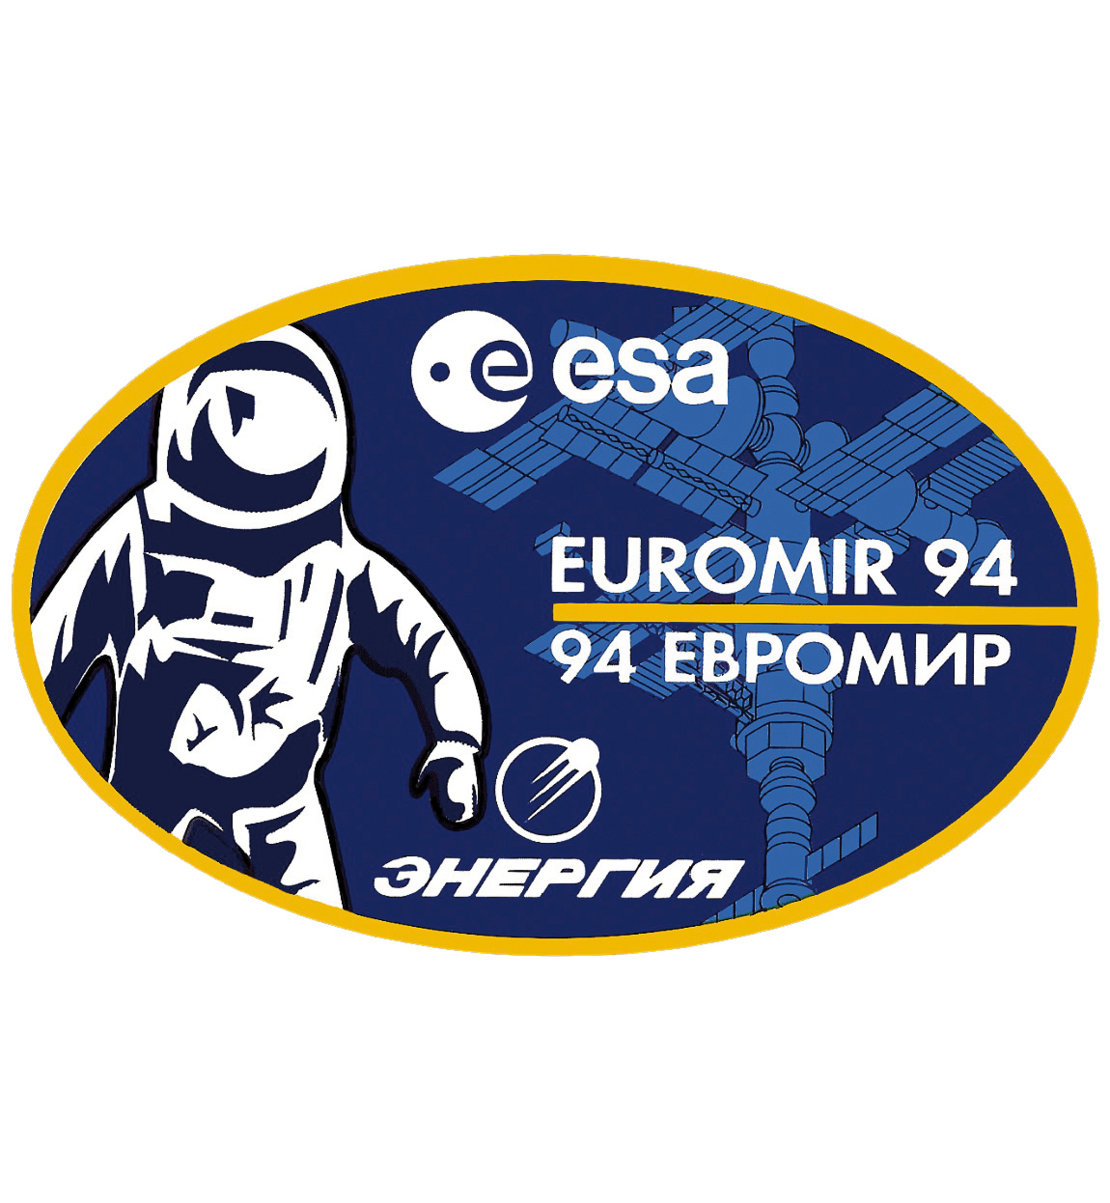 Soyuz TM-20 Euromir 94 mission patch, 1994